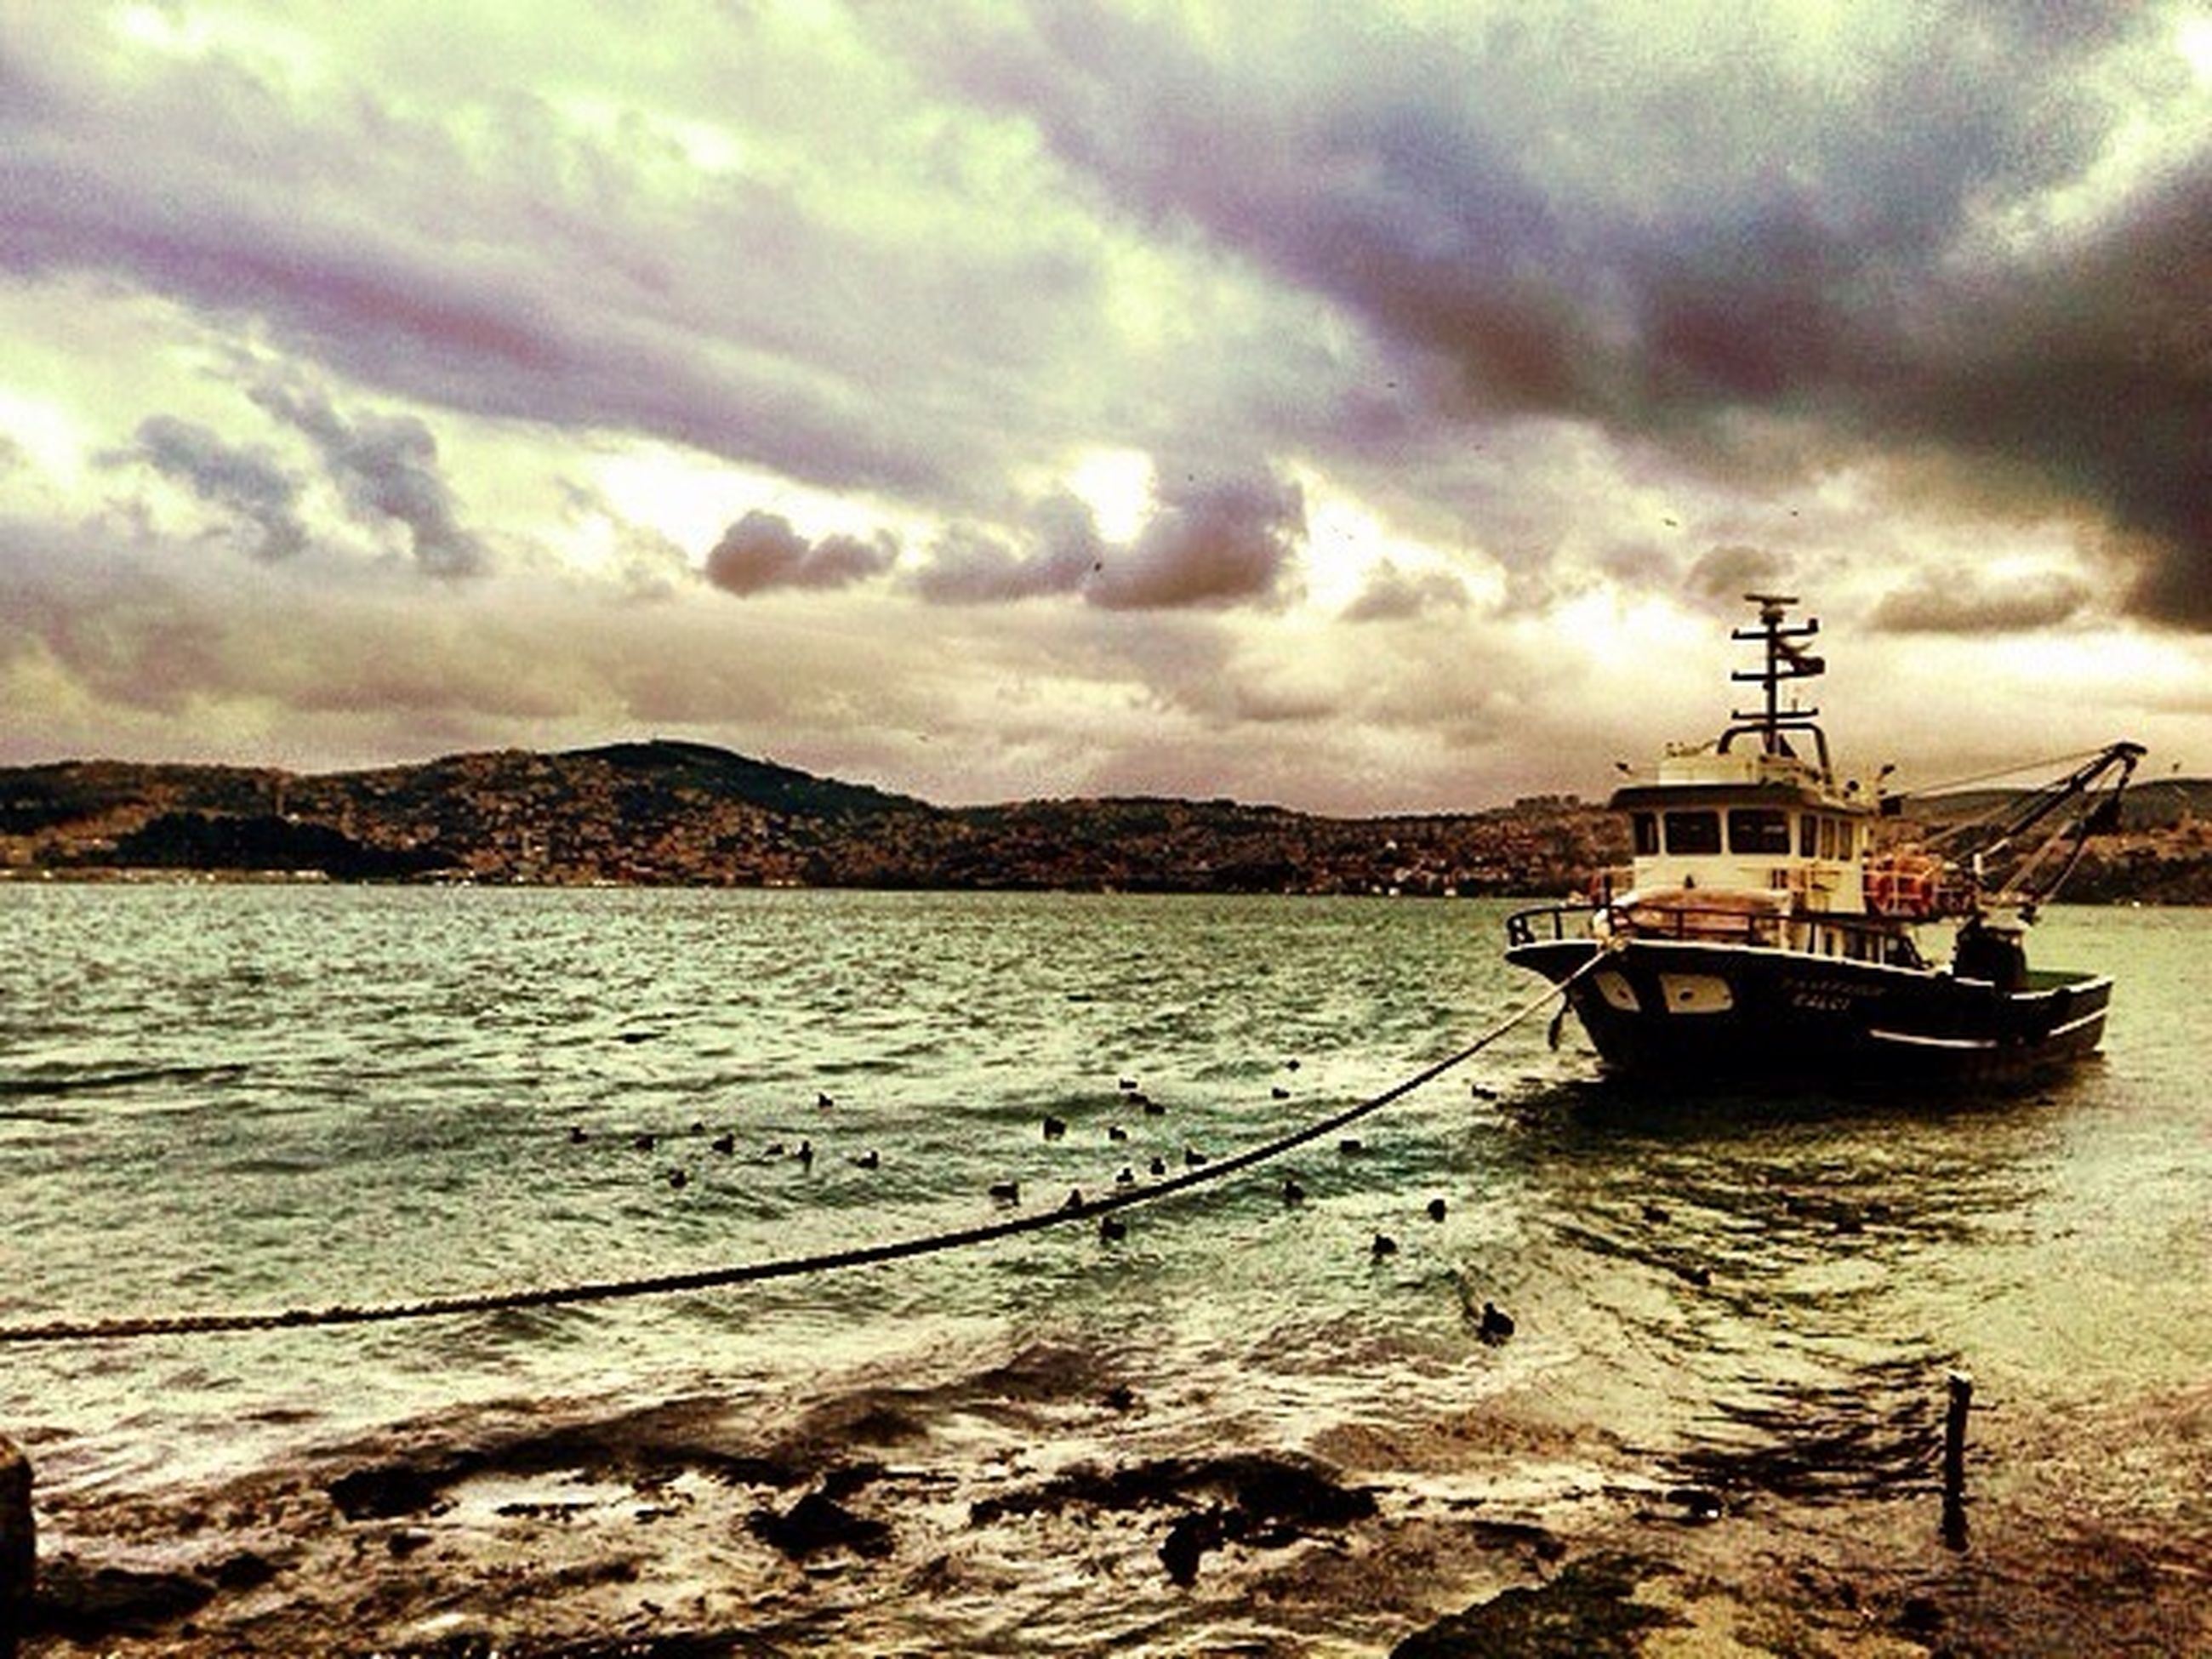 nautical vessel, water, sky, cloud - sky, transportation, boat, mode of transport, cloudy, moored, mountain, sea, cloud, tranquility, scenics, tranquil scene, beauty in nature, overcast, nature, weather, mast